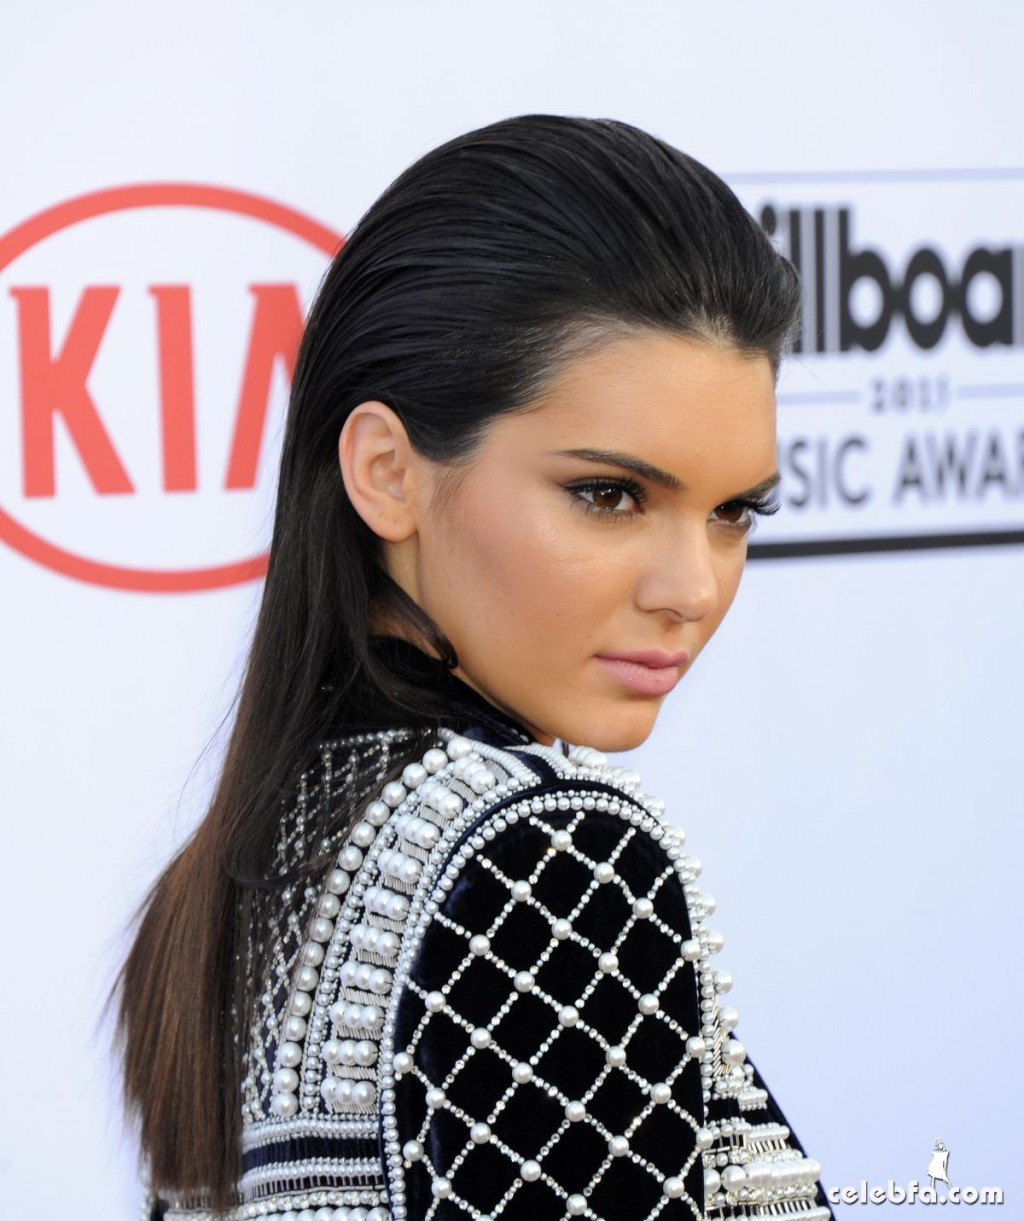 kendall-jenner-at-2015-billboard-music-awards (4)